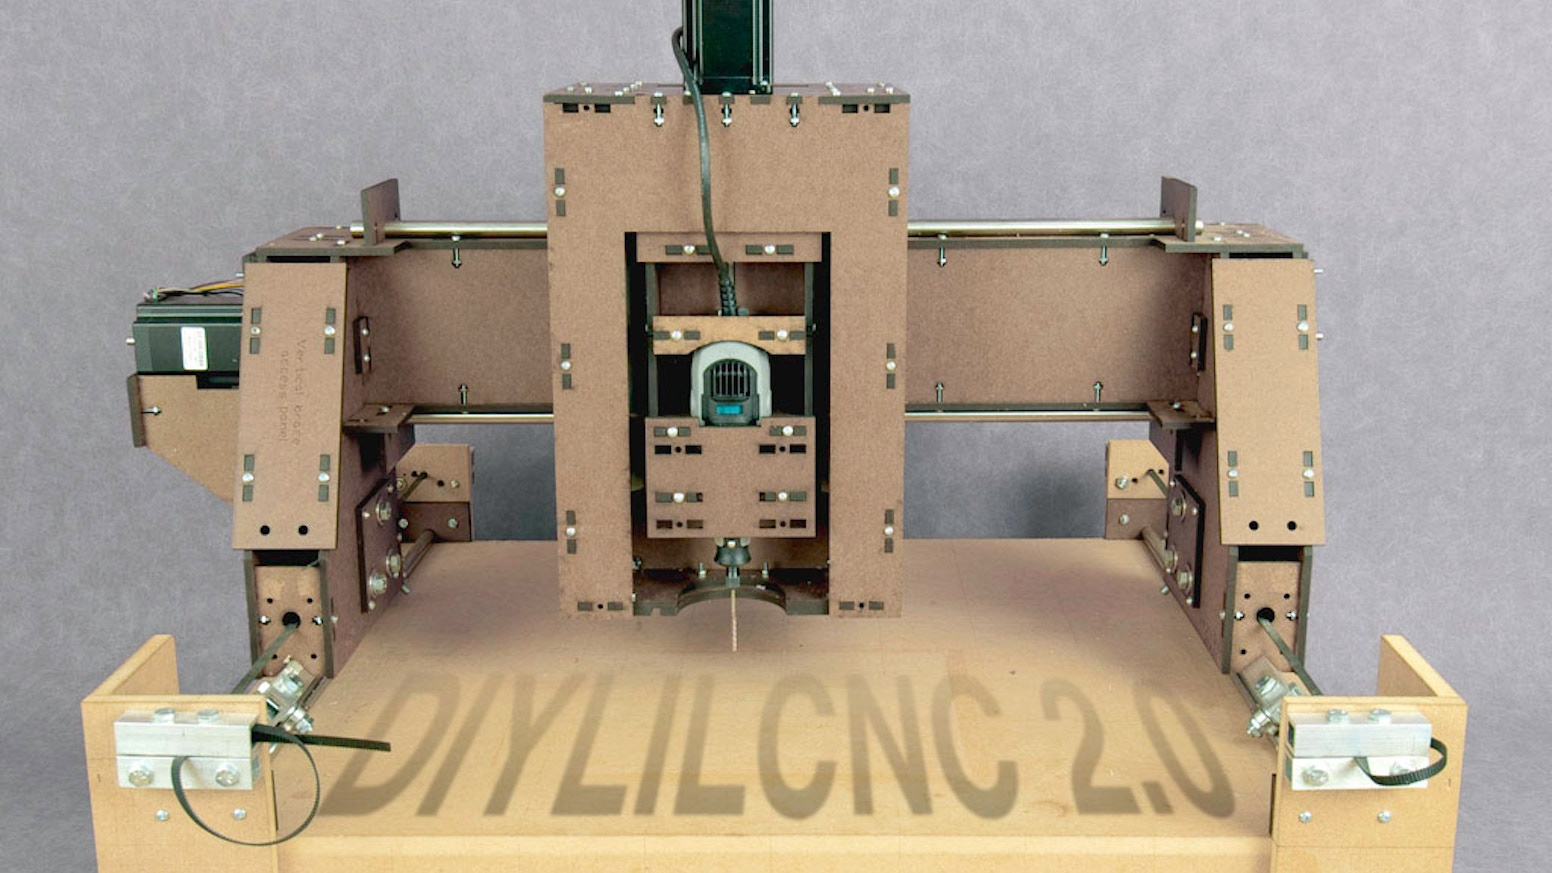 DIYLILCNC 2.0 - Open-source plans for a low-cost CNC mill.